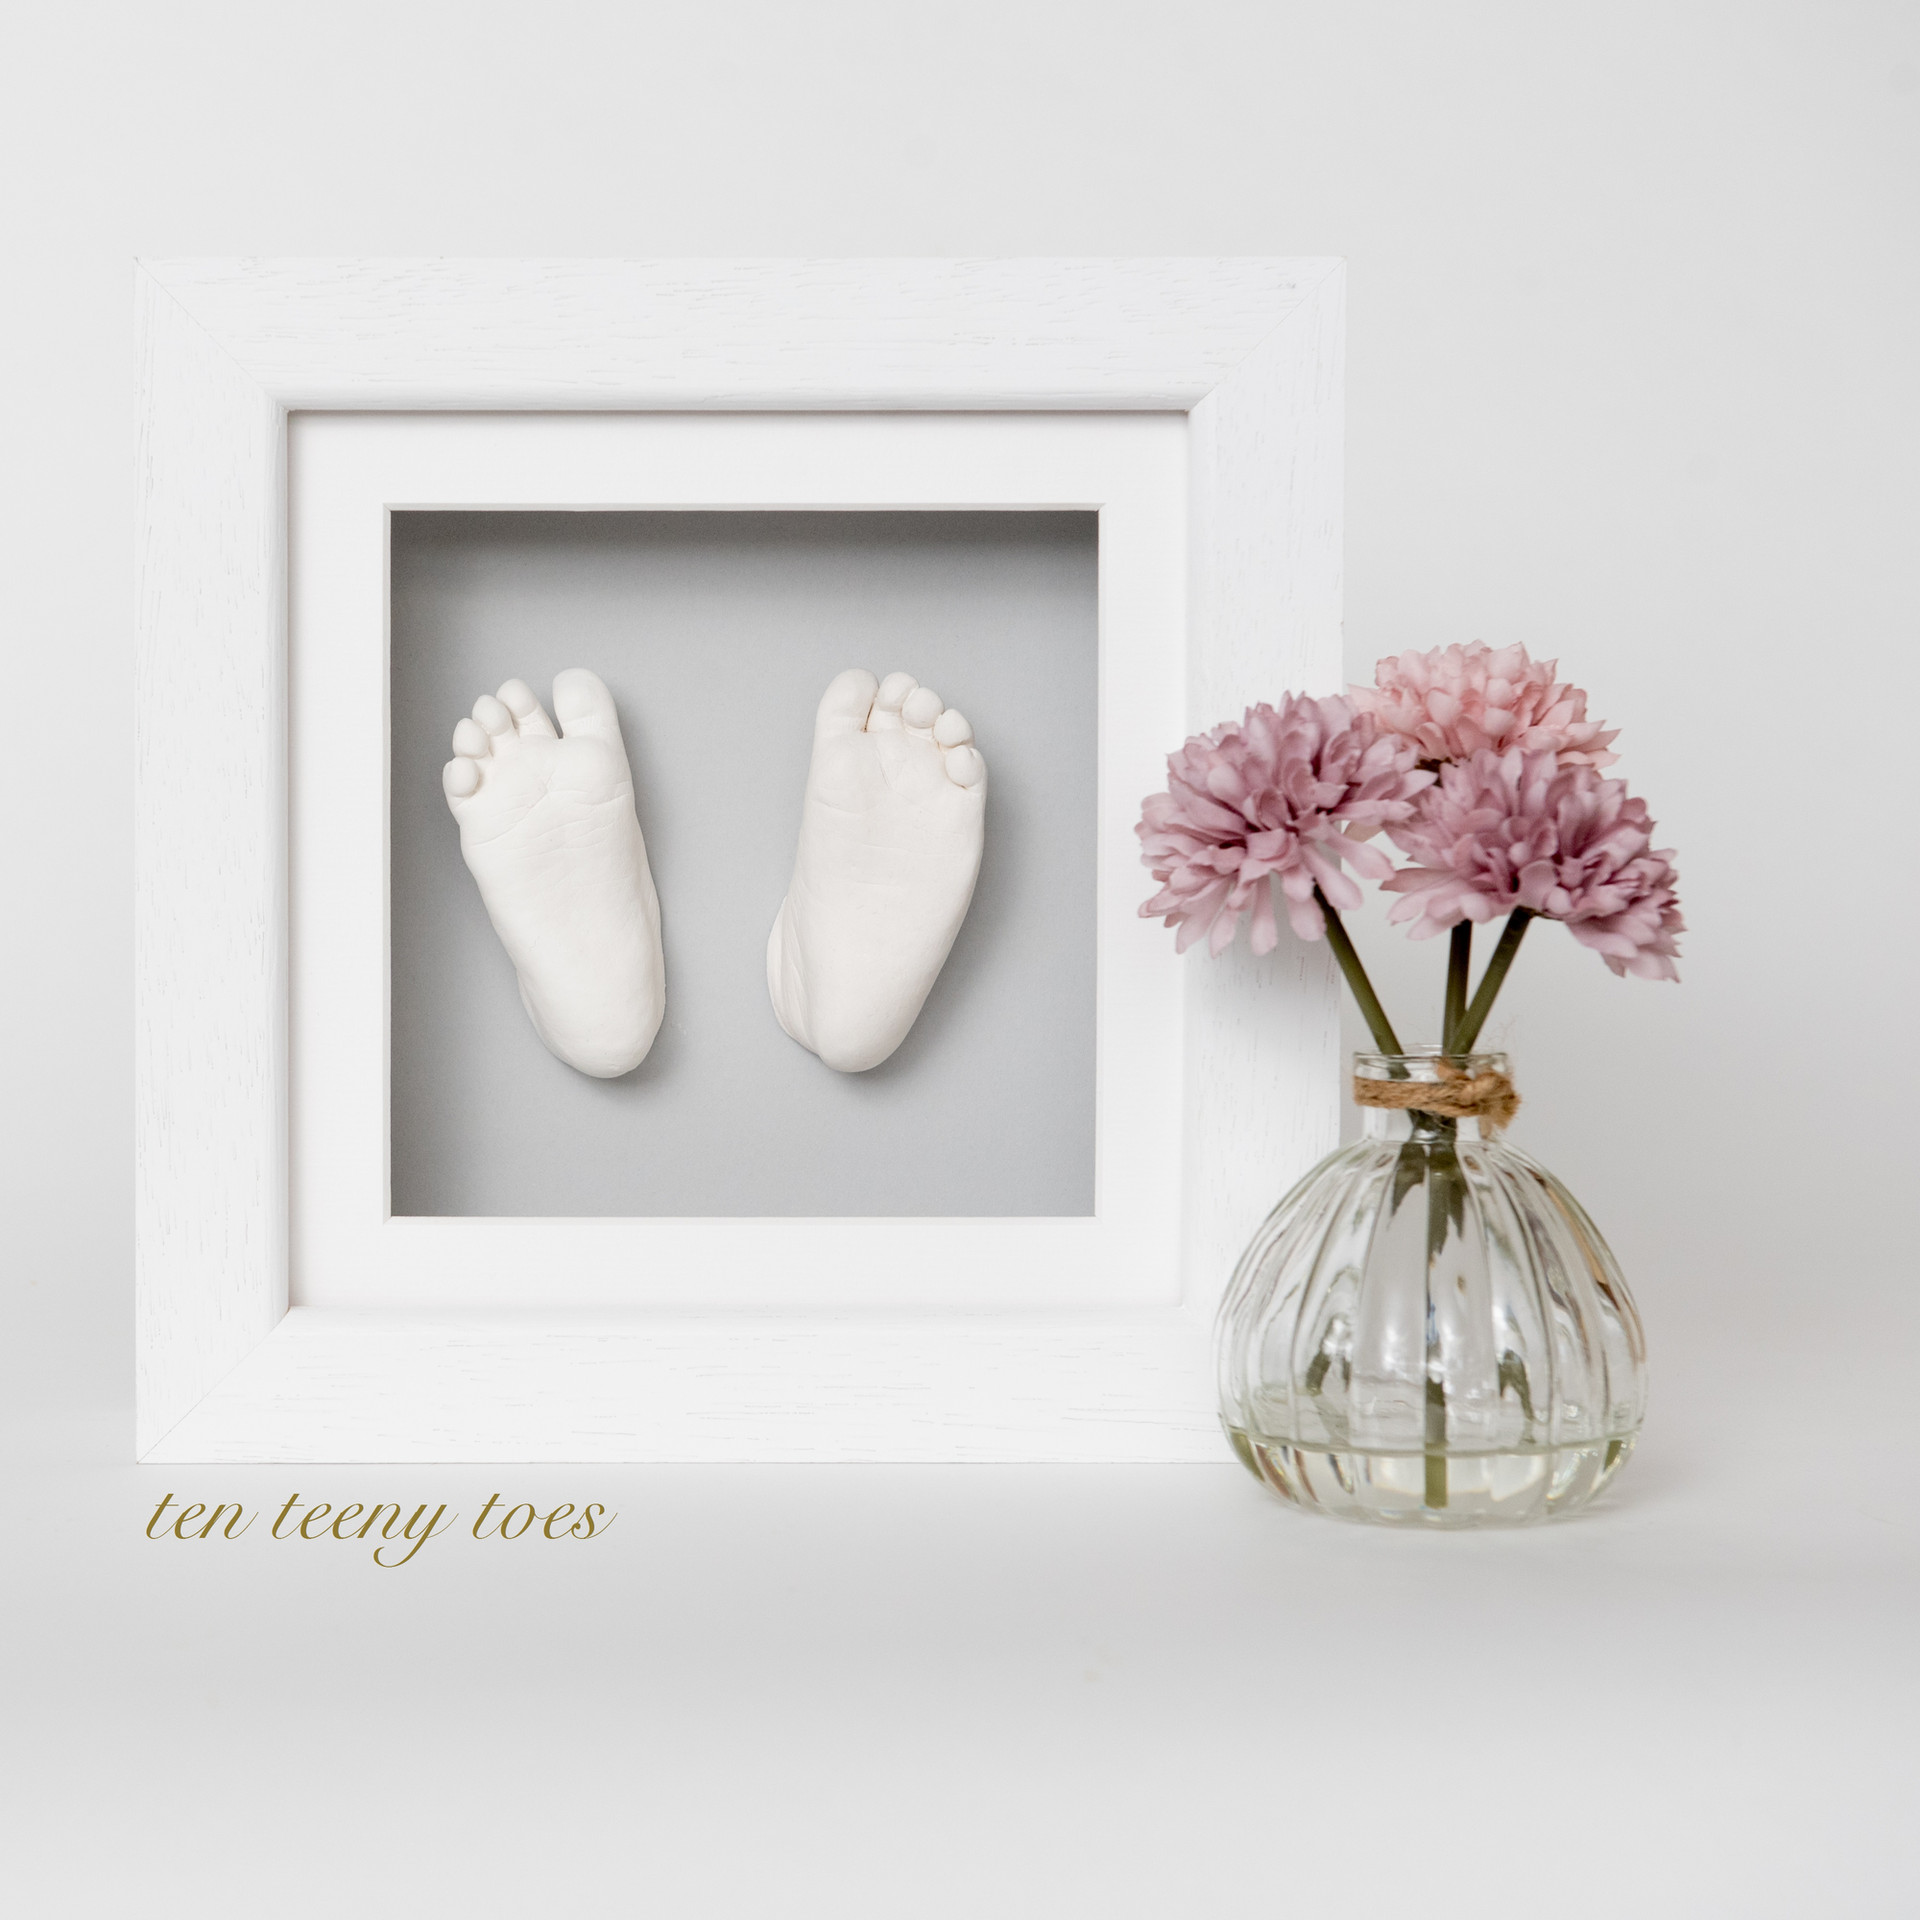 Ten teeny toes in a white contemporary hardwood frame.